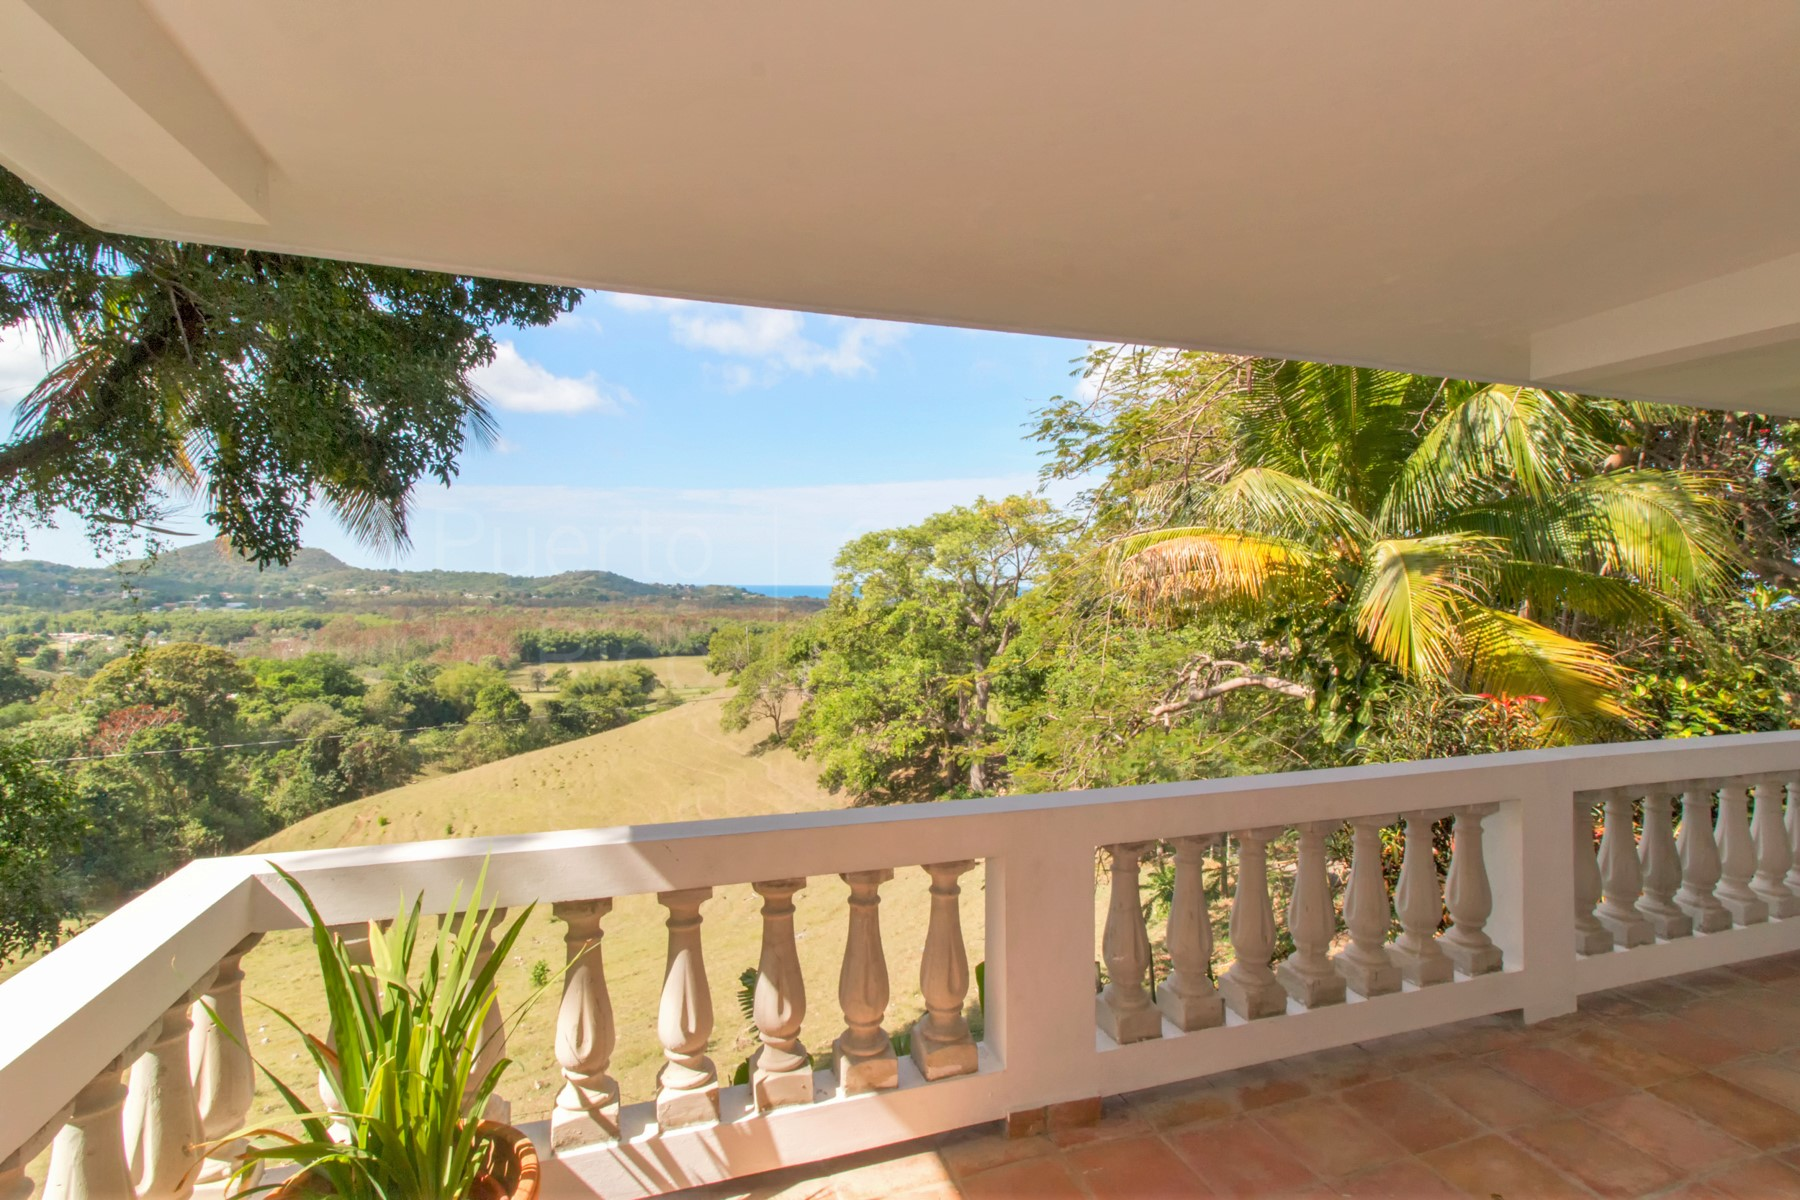 Additional photo for property listing at Picturesque Chateau on Rincon Hillside Carr. 411, KM. 0.2 Interior BO. Calvache Rincon, Puerto Rico 00667 Puerto Rico